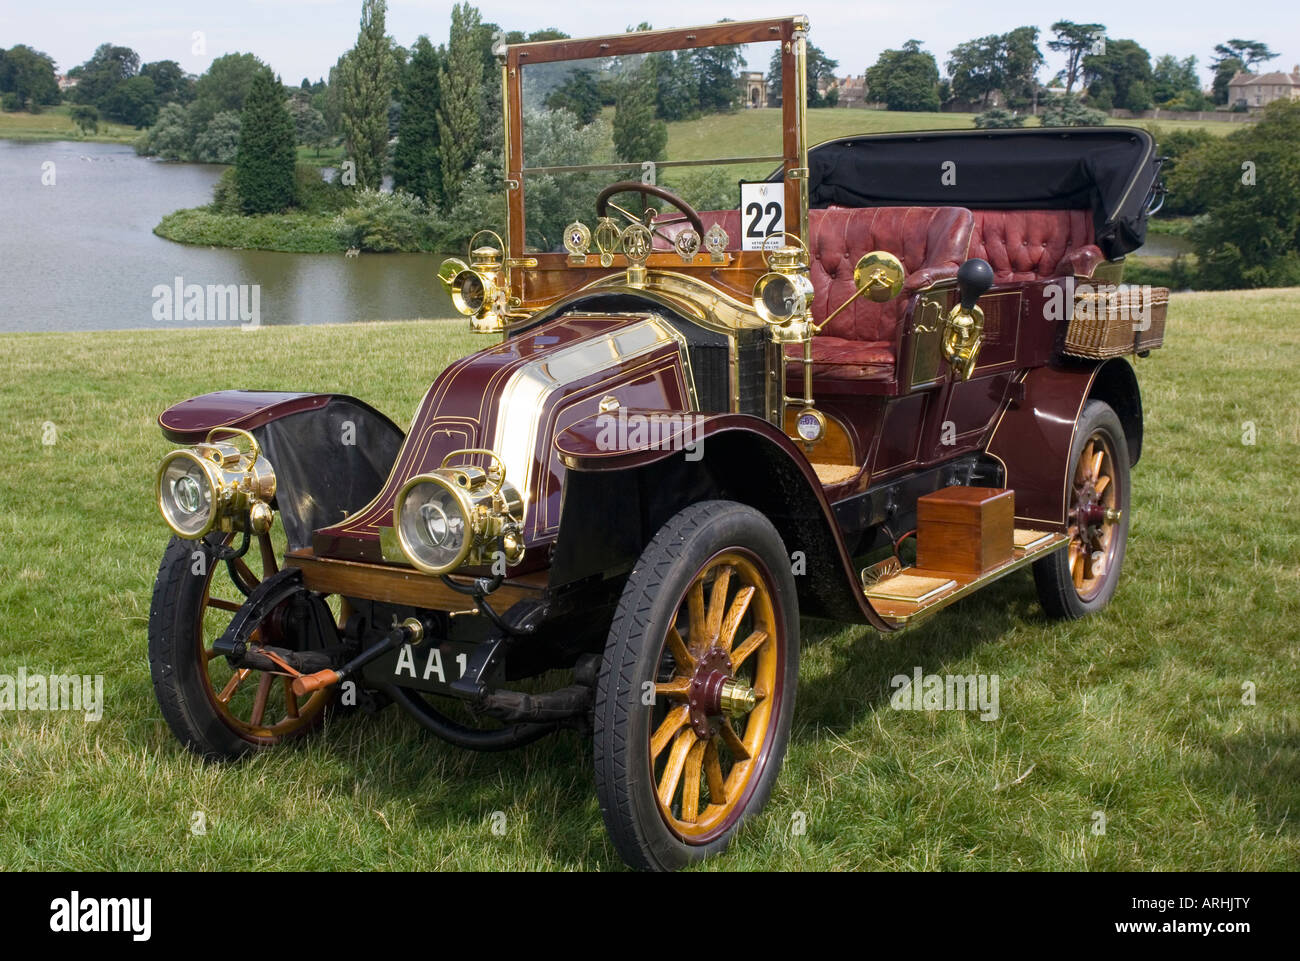 A veteran burgundy1905 Renault 20 30hp Made in Billancourt Paris, parked on grass with a lake in the background - Stock Image